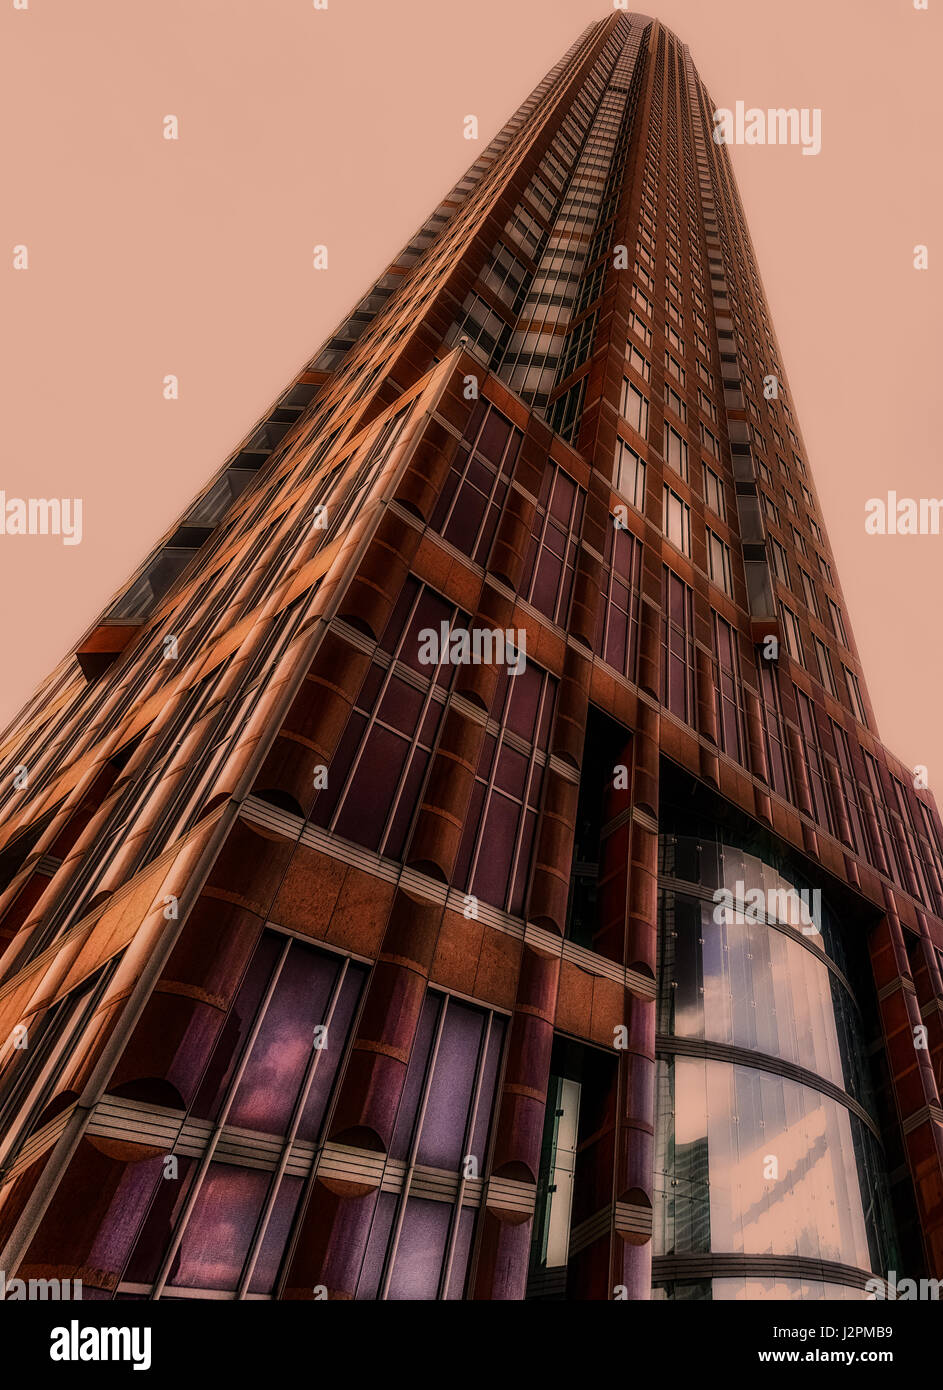 Color fine art architecture photo of Messeturm (fair tower) , Frankfurt am Main, Germany, in red tones Stock Photo